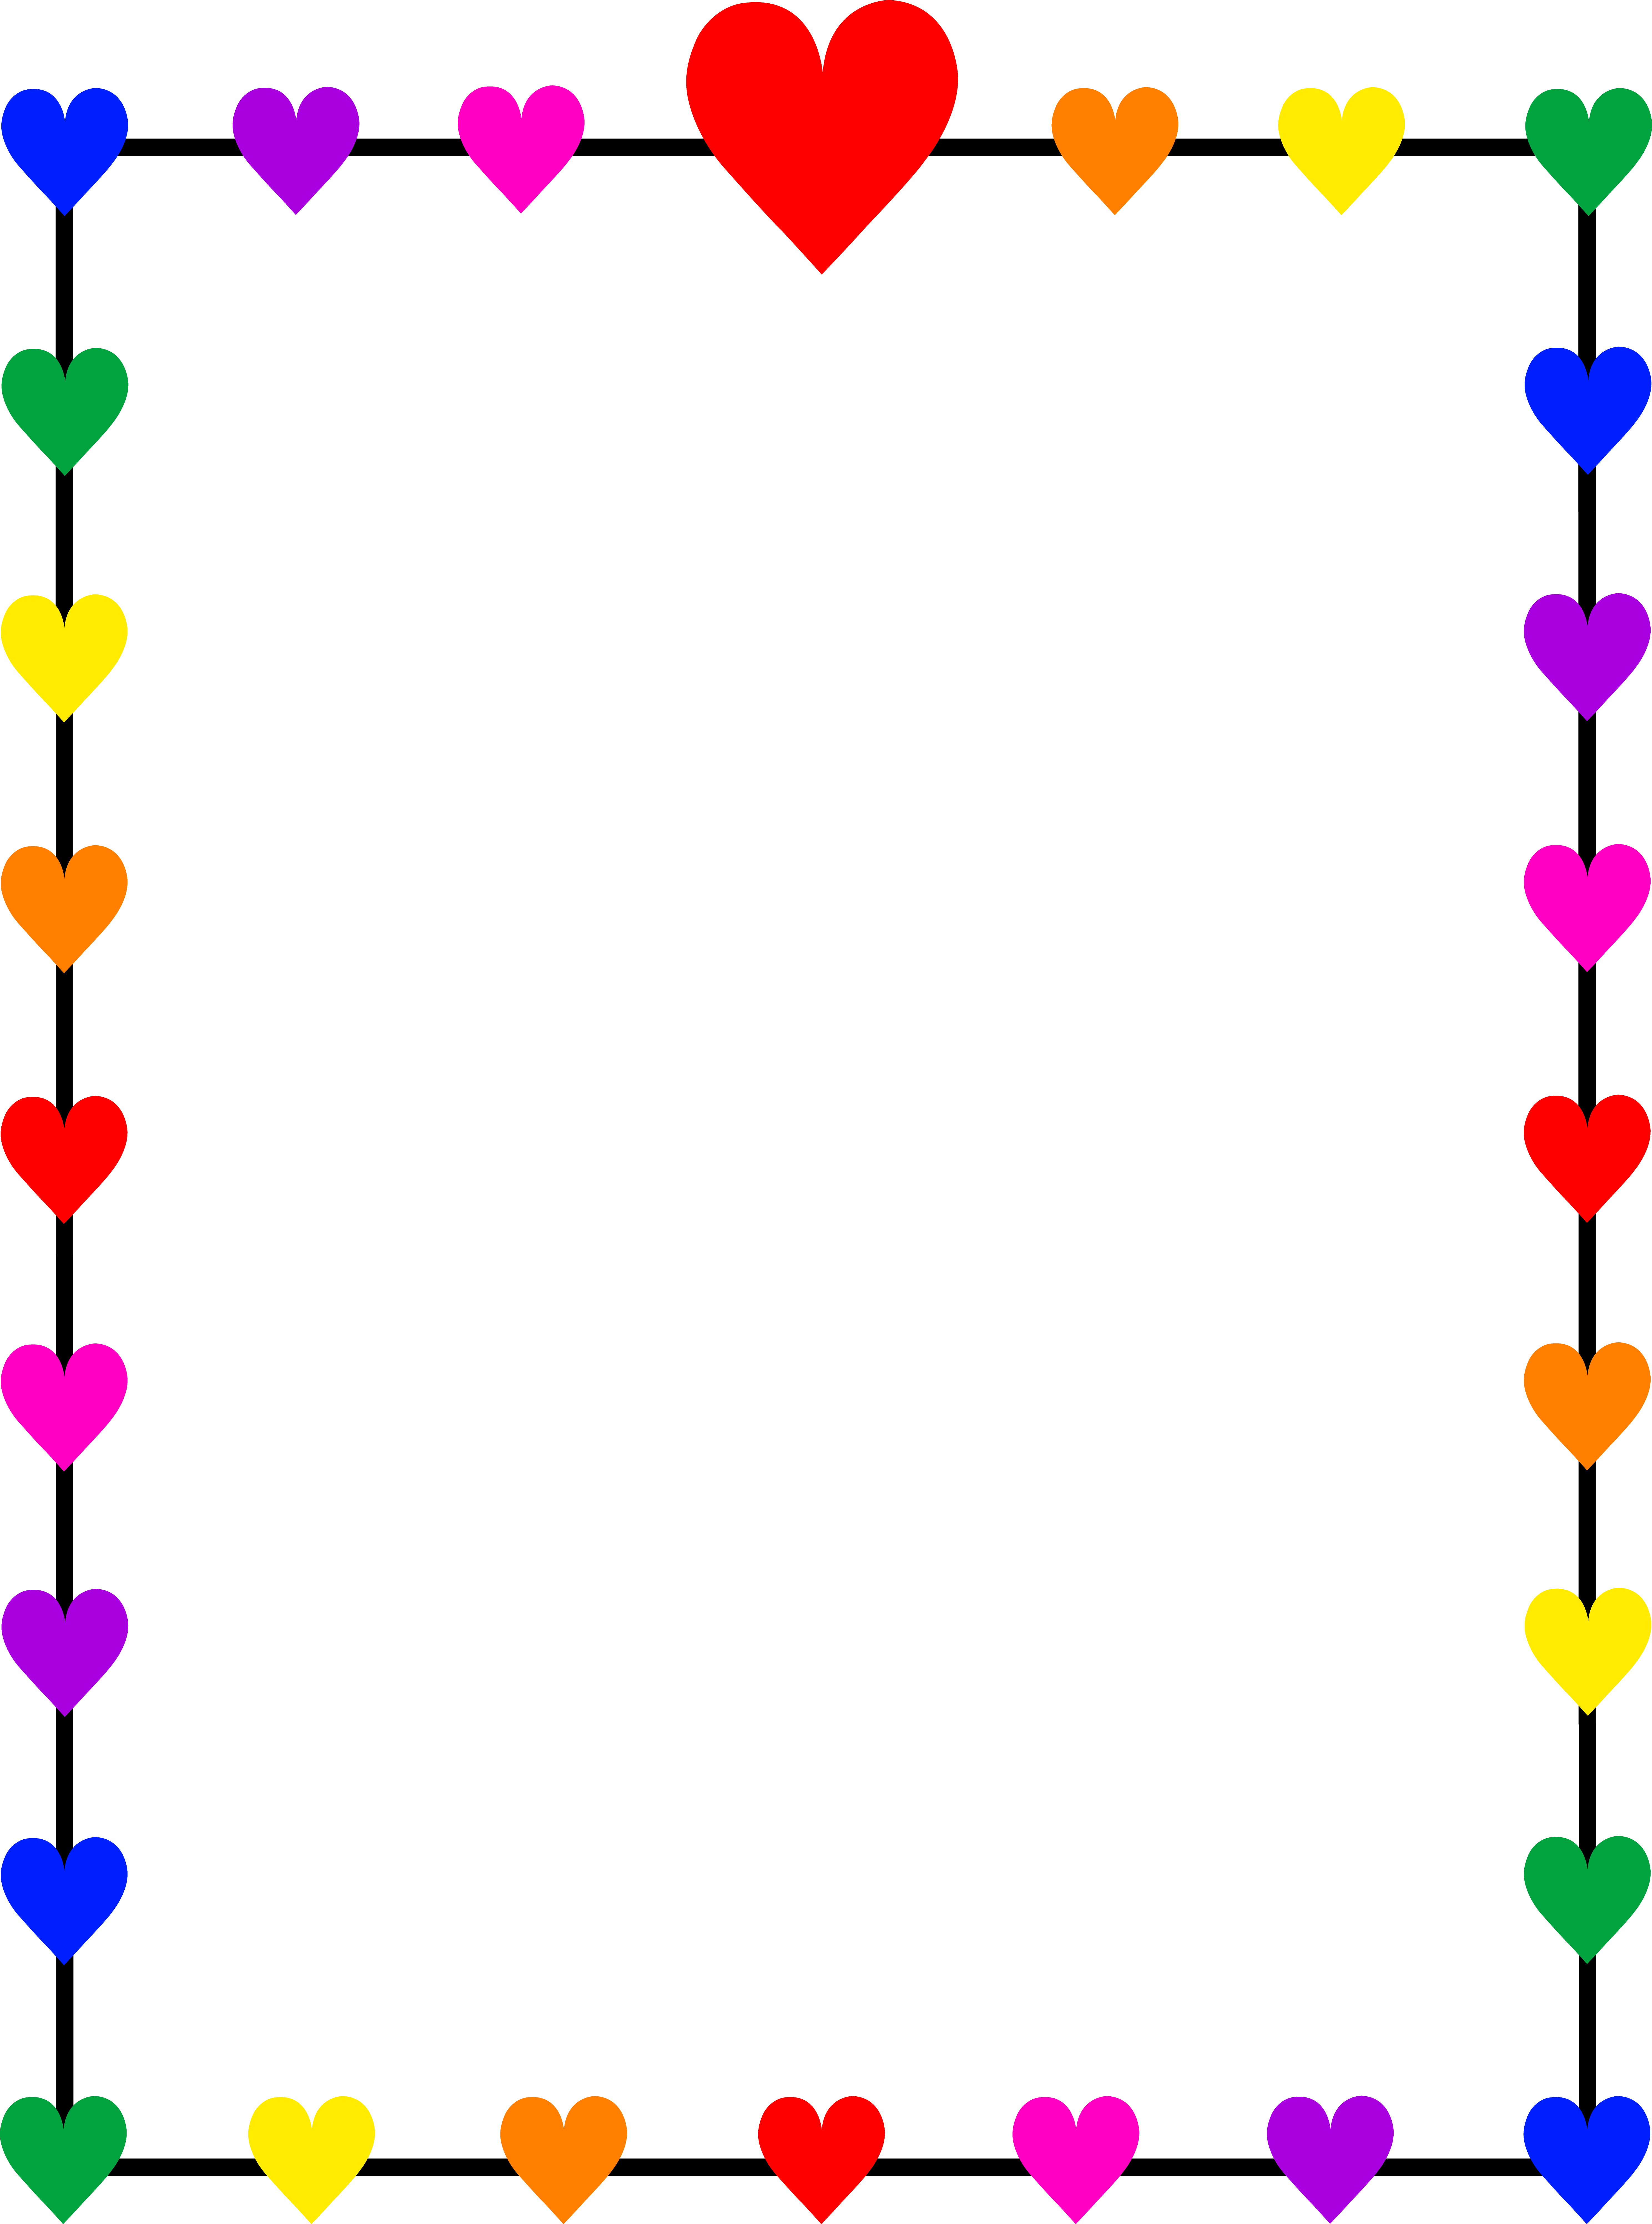 borders and frames clip art | Rainbow Hearts Border Frame - Free Clip Art - Free PNG Frames And Page Borders